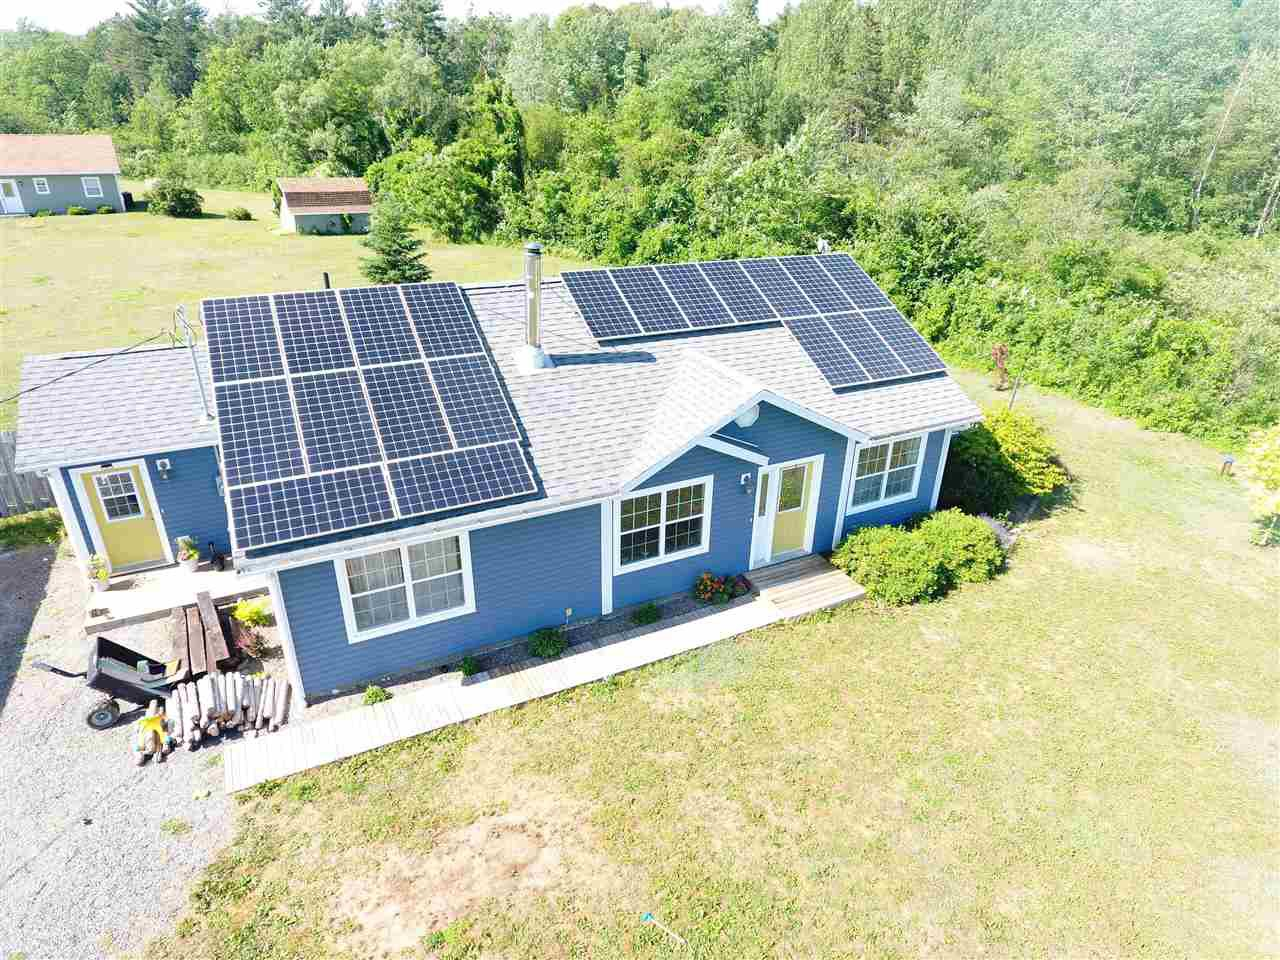 Main Photo: 538 Pleasant Valley Road in Somerset: 404-Kings County Residential for sale (Annapolis Valley)  : MLS®# 202016953